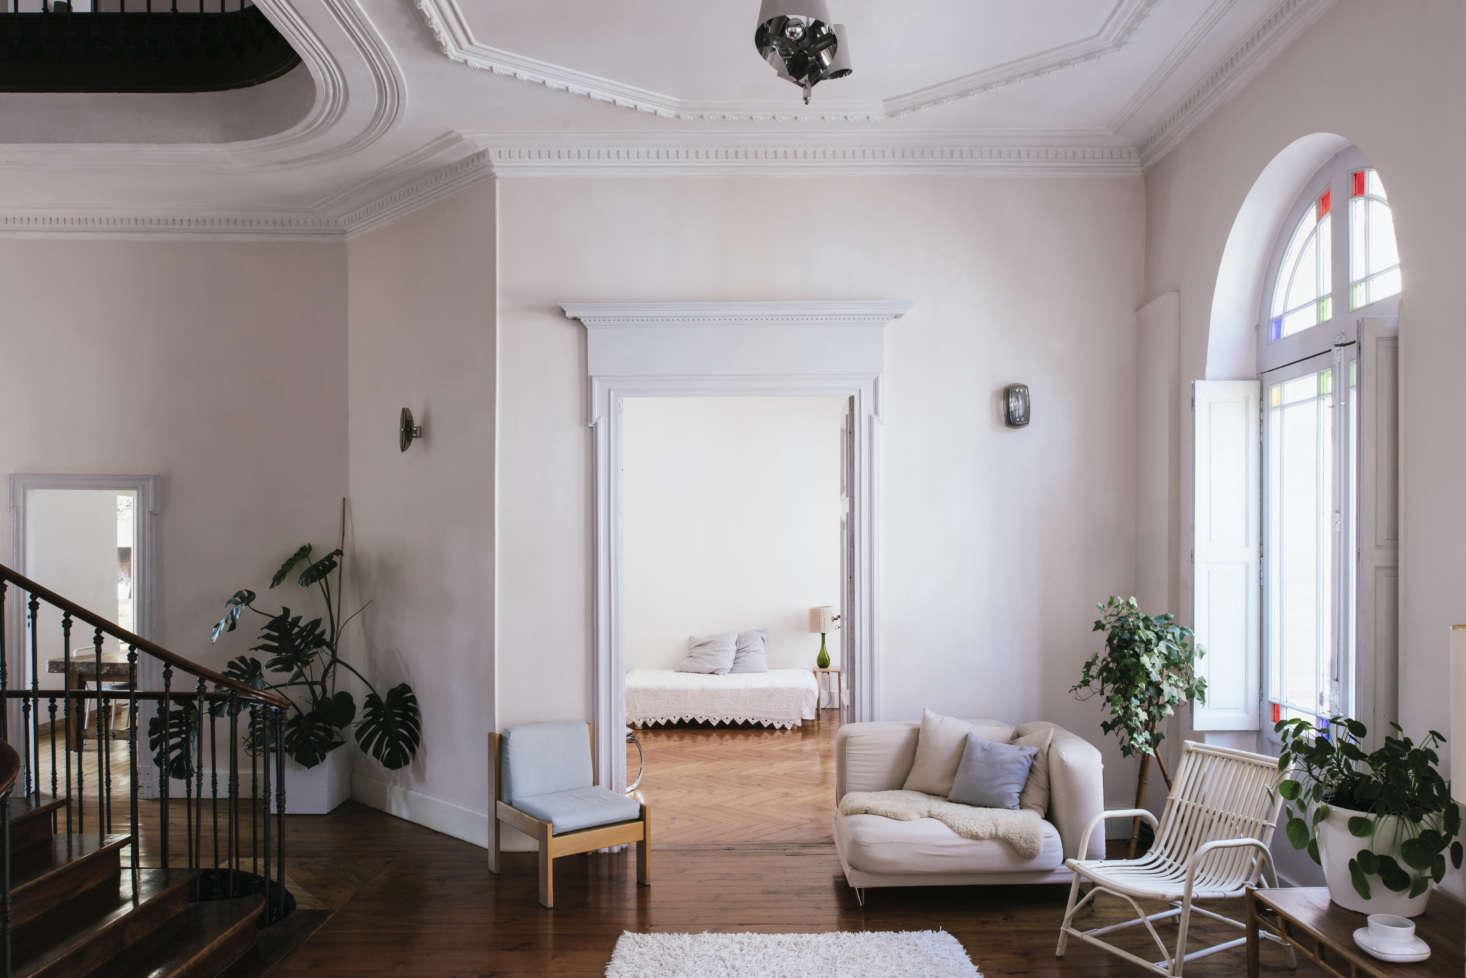 """""""The pastel painted walls were already there and I liked their weathered side,"""" Sathal says of the pale pink walls. """"The trim is typical of the style of the house and is original."""""""